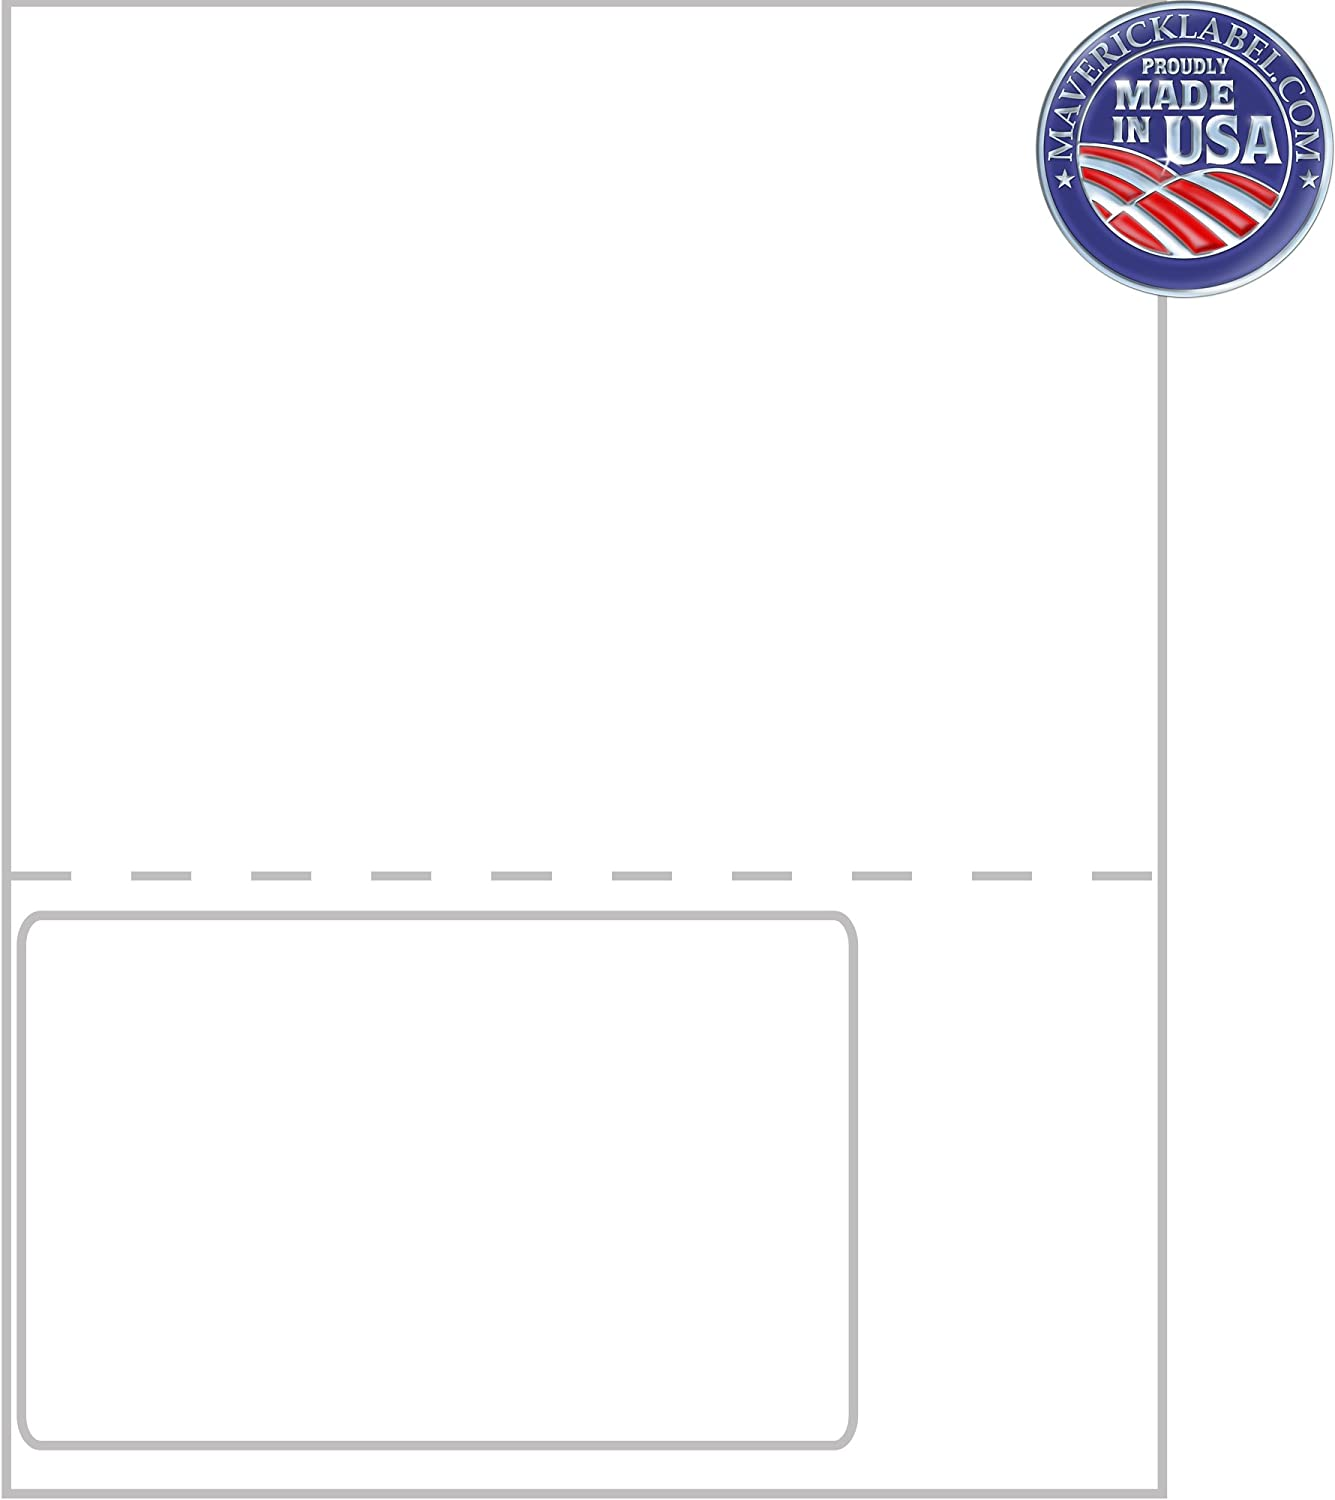 Integrated Label Sheets Custom Labels Label Sheets can be Used as Personalized Labels Mailing Labels FC-0017 Shipping Labels 1 up Labels 6x4 Full Perforated Sheet Packing Slip